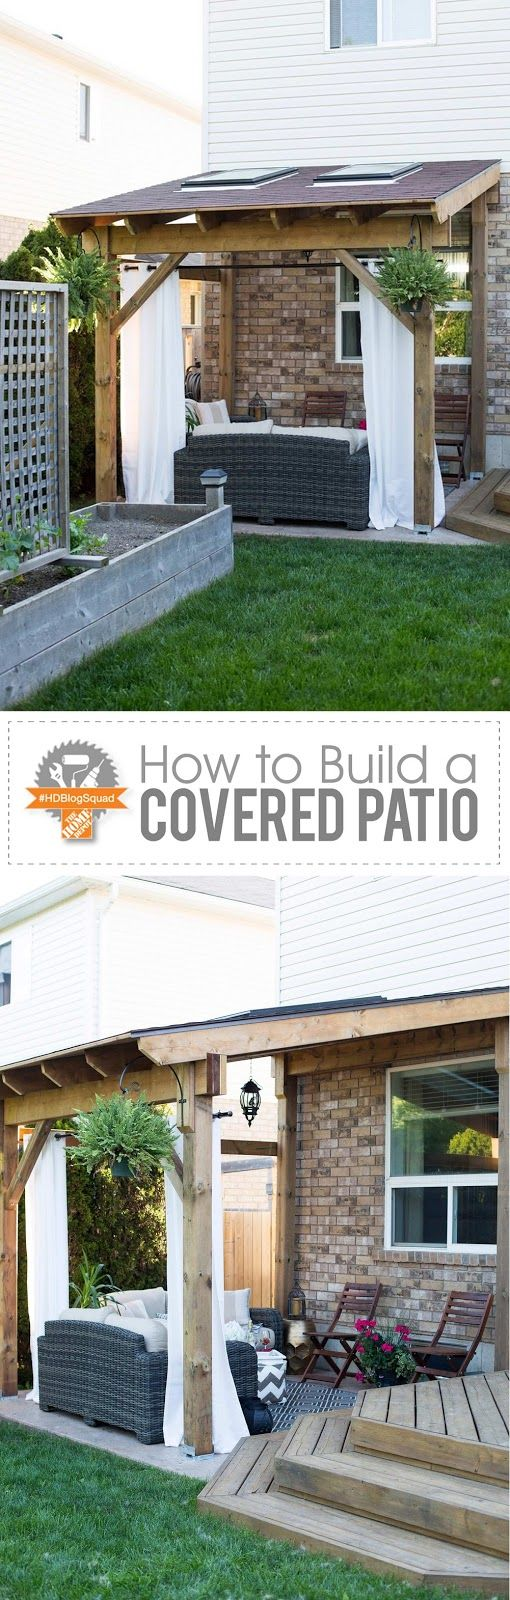 Hdblogsquad // How To Build A Covered Patio | Gärten, Überdachte